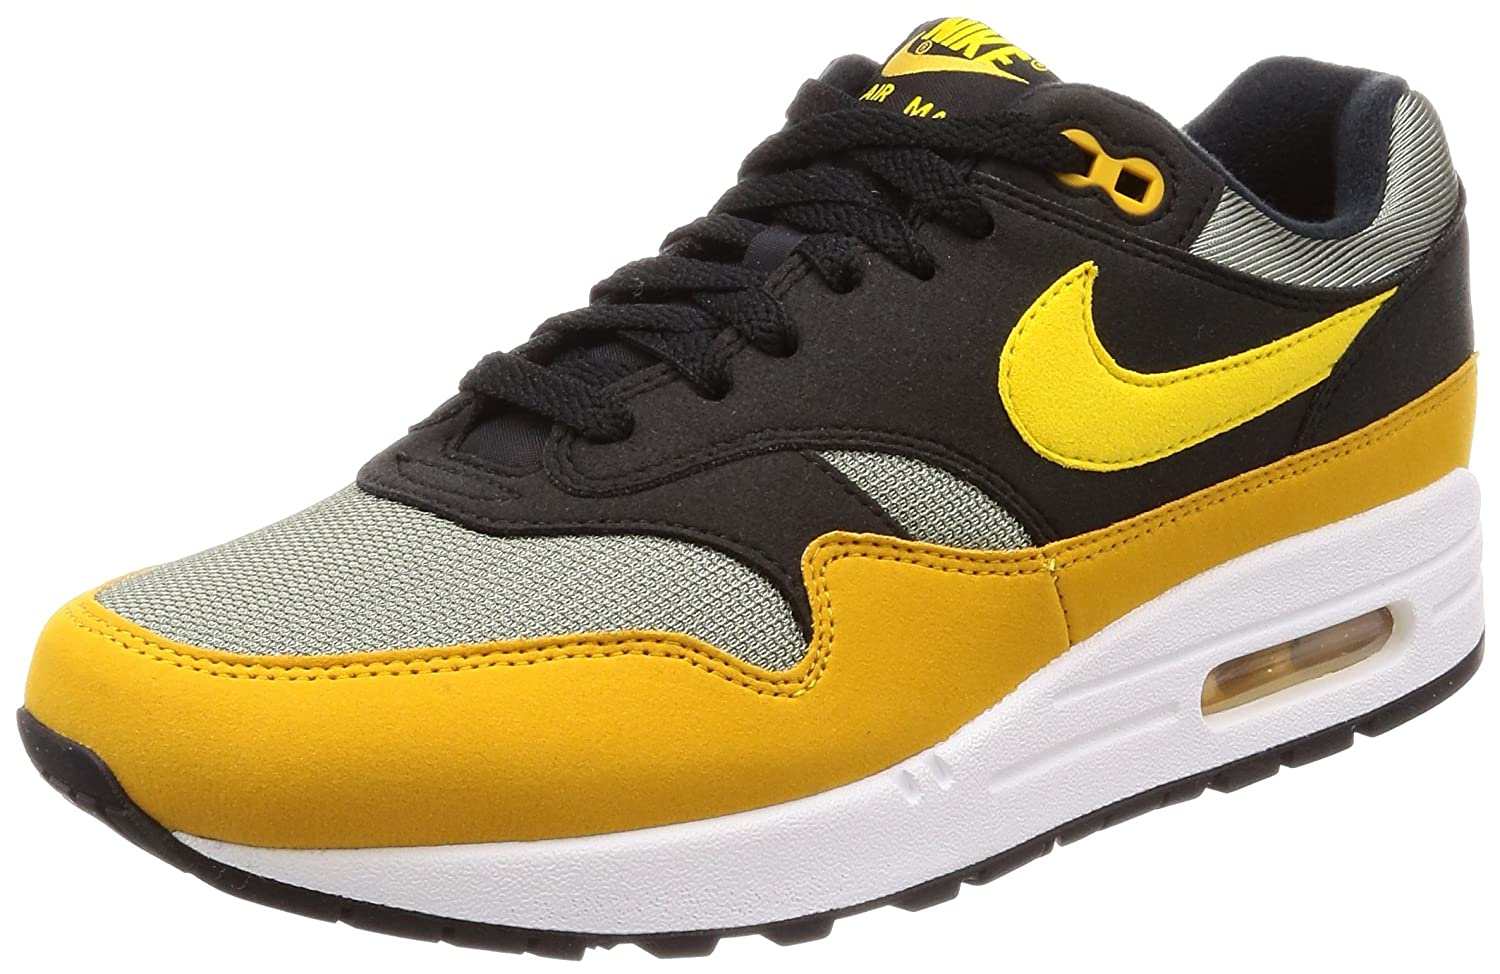 Amazon.com | NIKE - Air Max 1 - AH8145001 - Color: Yellow-Grey-Black - Size: 8.0 | Fashion Sneakers